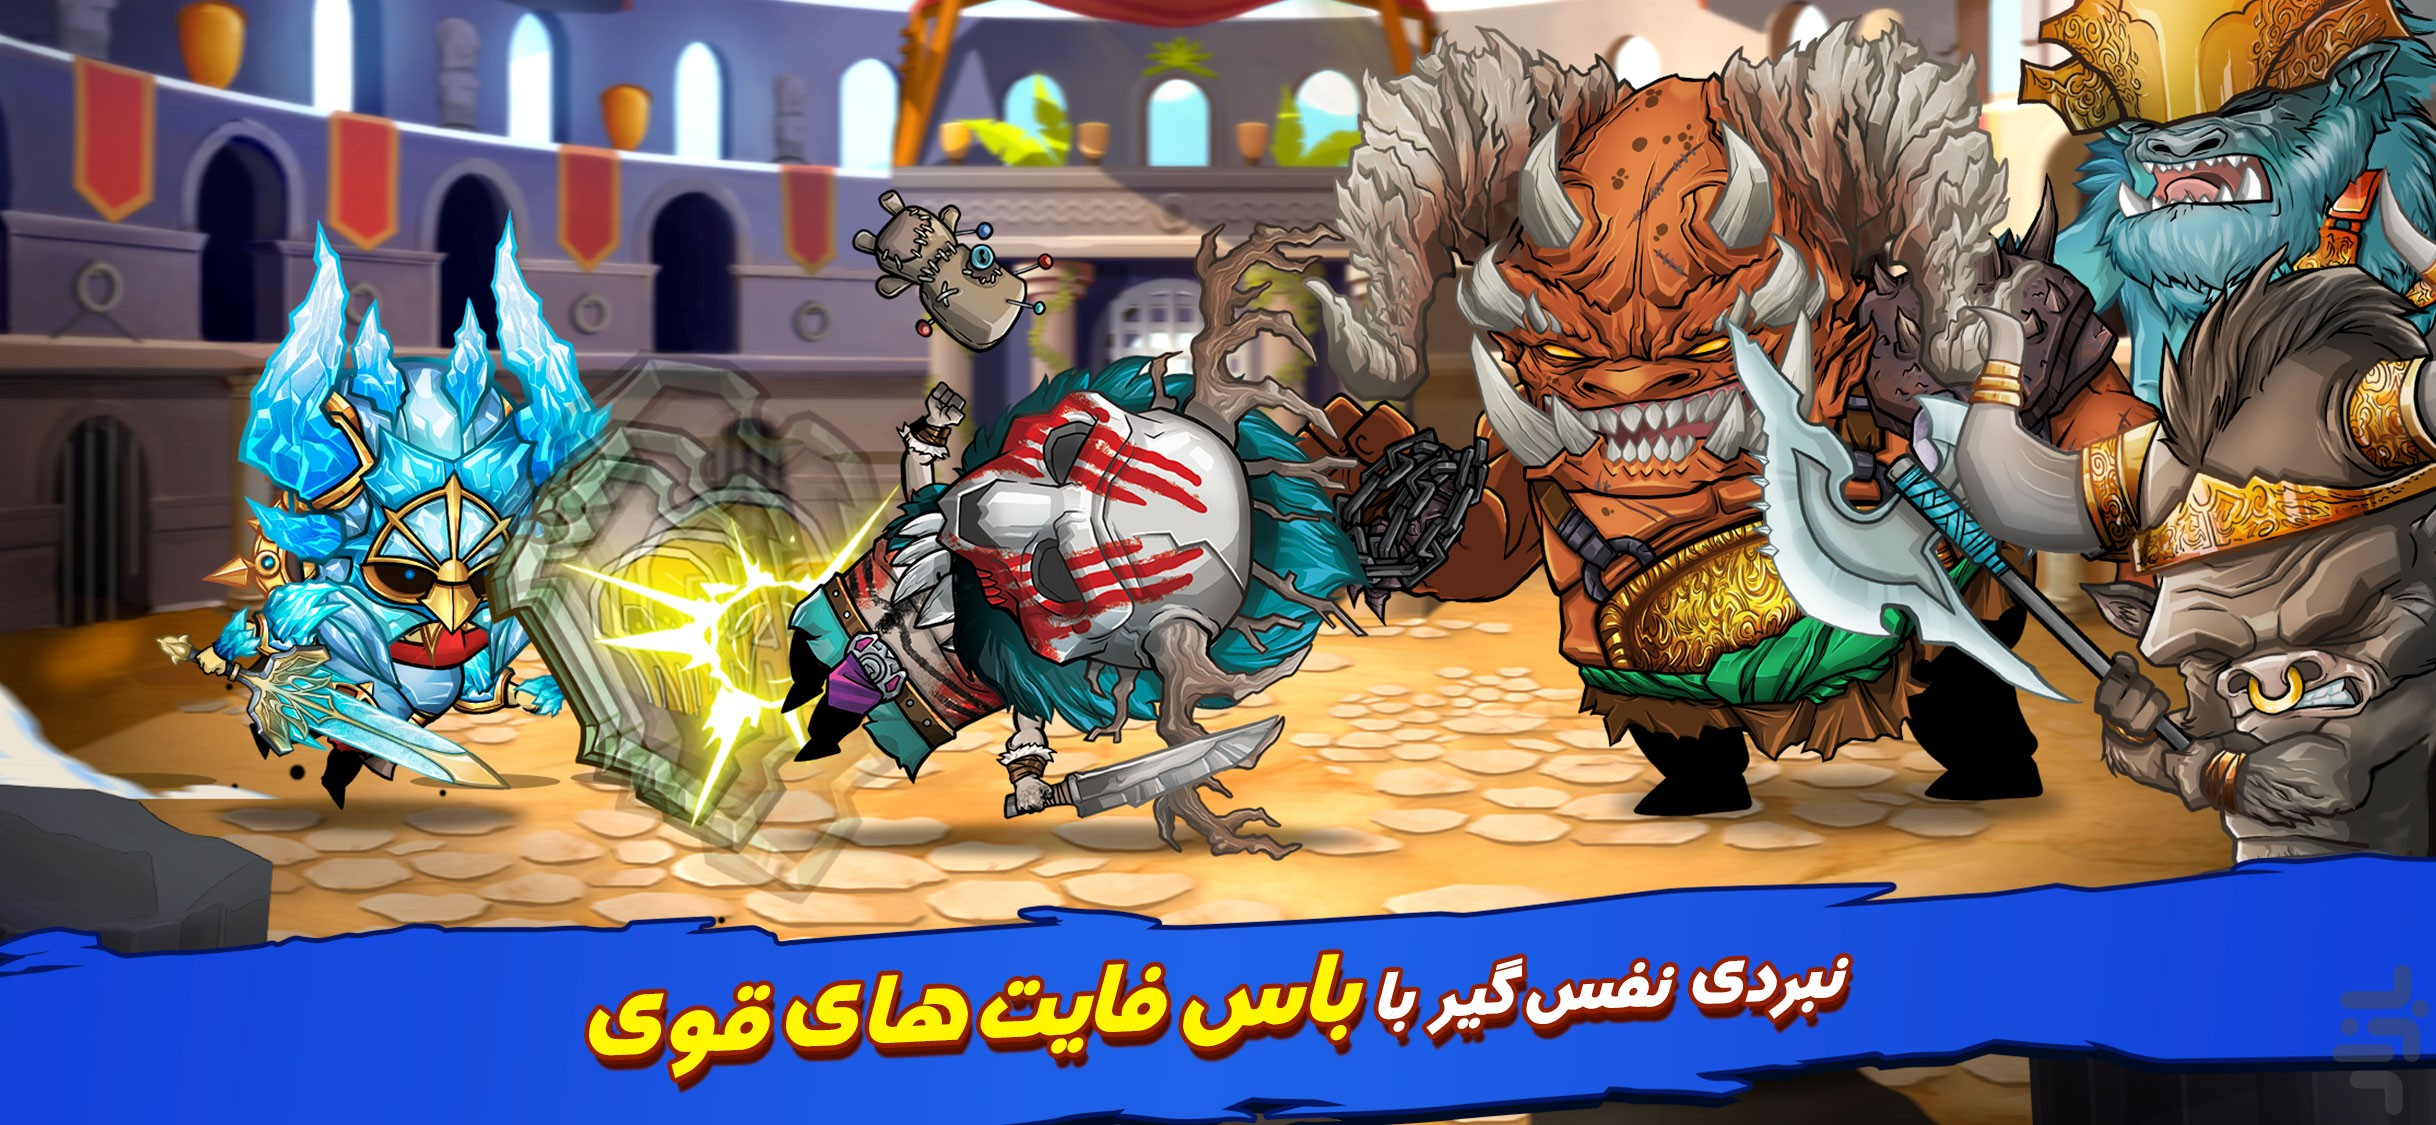 Tiny Gladiators Game for Android - Download | Cafe Bazaar